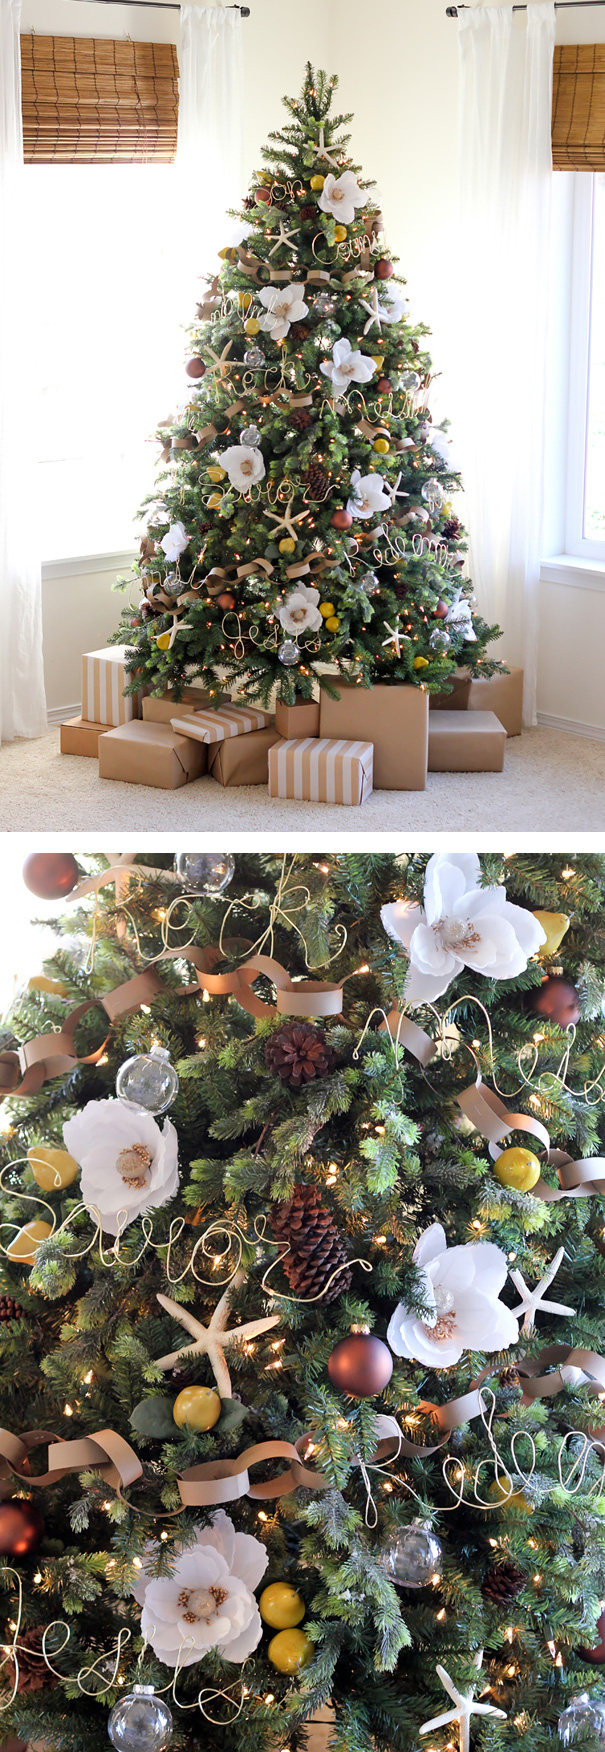 AD-Floral-Christmas-Tree-Decorating-Ideas-06